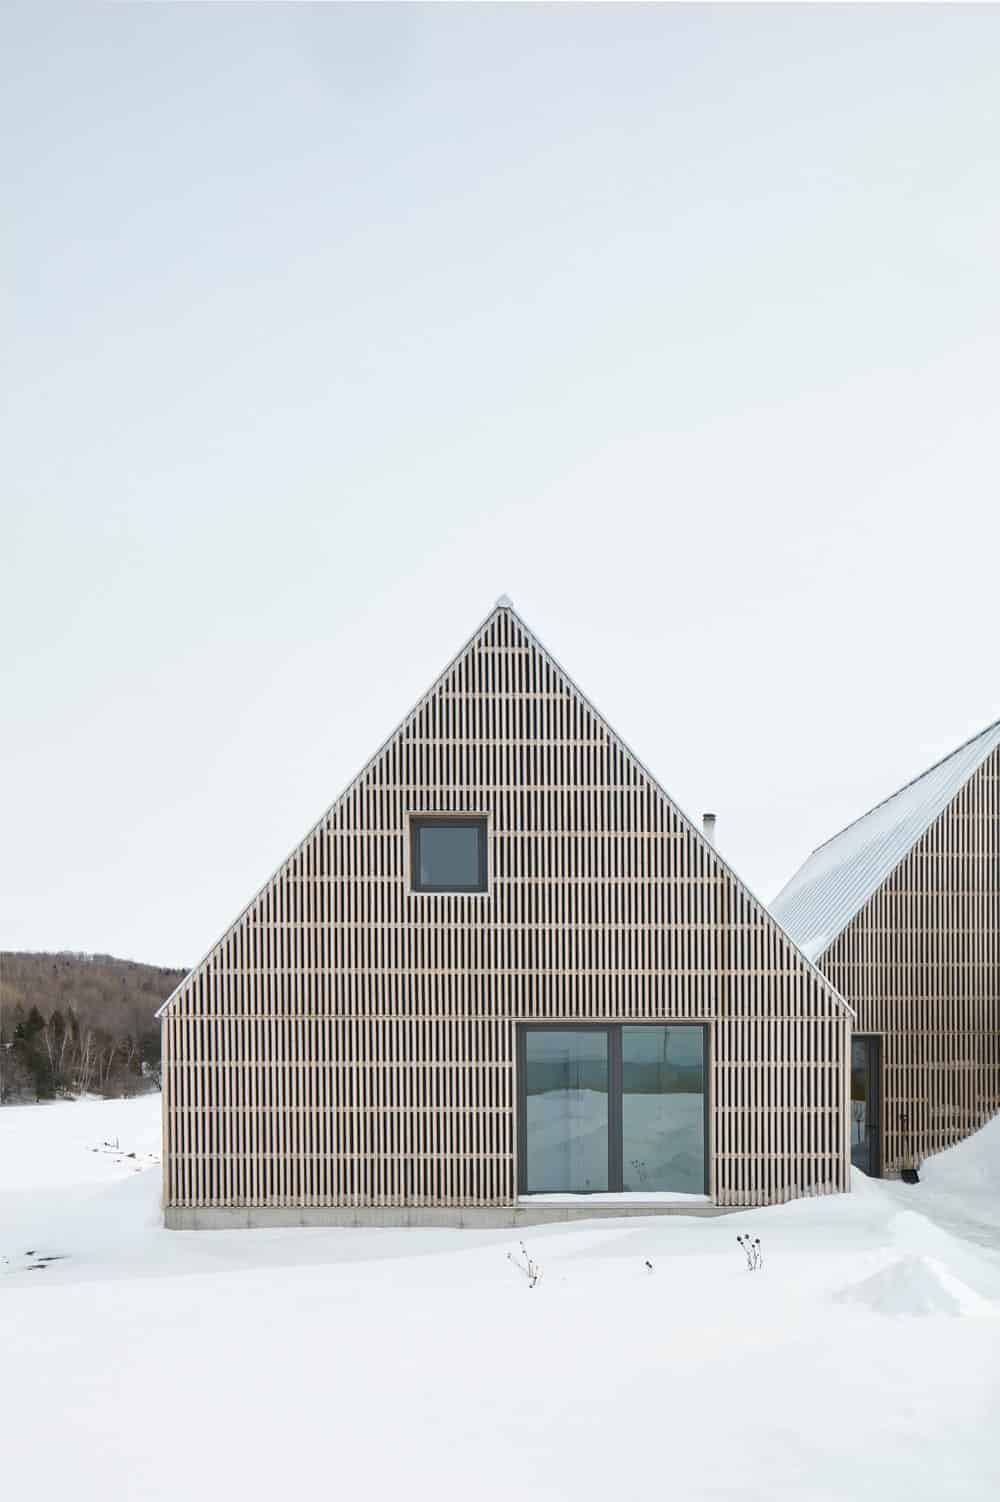 This is the facade of aScandinavian-Style home with a high Gable roof  paired with a small chimney on one side. The walls have a peculiar wooden slat design that offers an intricacy that contrasts the surrounding monotone of the white snowy scenery.